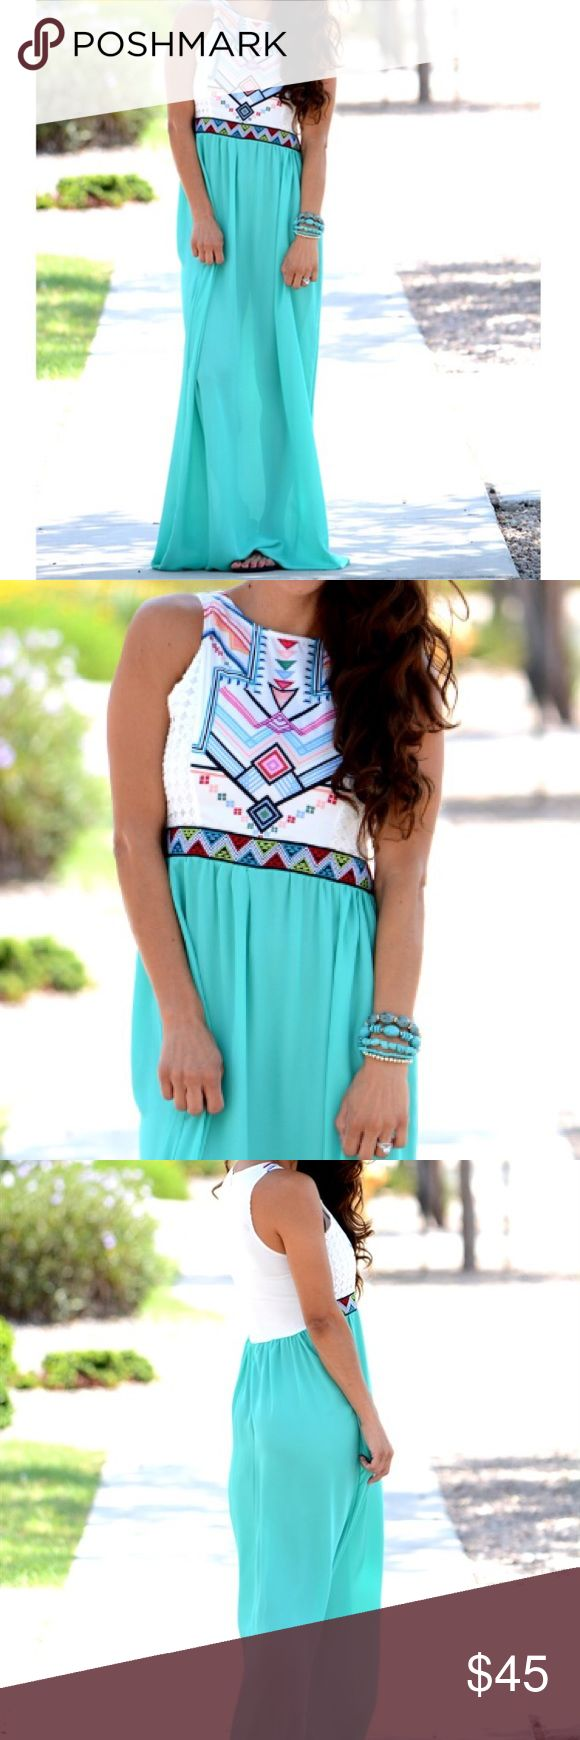 """Aztec Max dress With the bright, vibrant colors, you will definitely stand out from the rest of the crowd in this Aztec maxi dress. Dress it up with a pair of wedges, or make it more casual with some steal it sandals. It's the perfect dress for any occasion, from a dinner date, to a casual walk in the park. Not lined, so you will need a slip under this one. Runs slightly small, fits 4-6 best. Bust:19"""" with tiny bit of stretch, length:50"""" total. Dresses Maxi"""